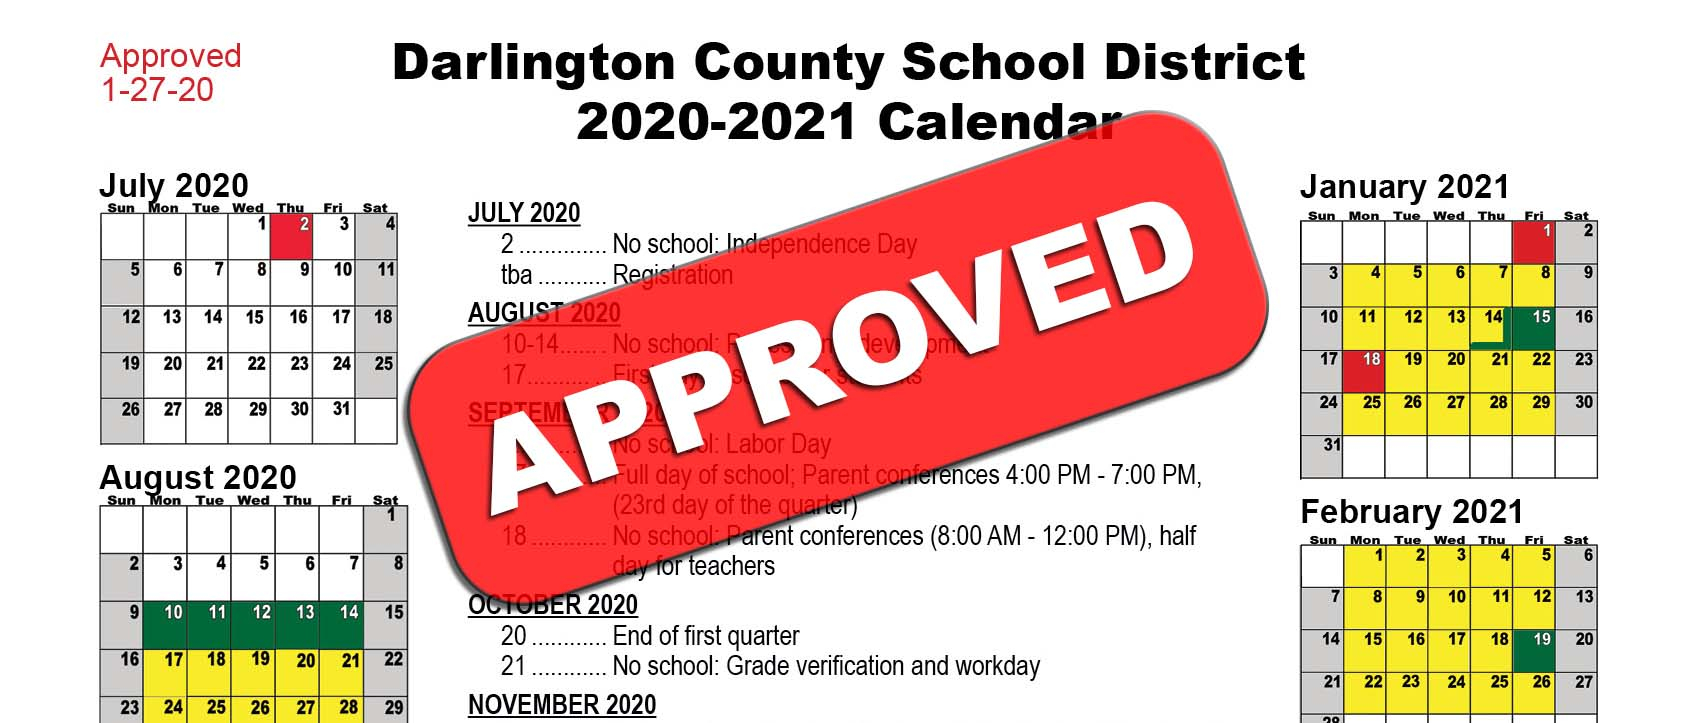 Board Of Education Approves 2020 2021 District Calendar In Johnson And Wales 2021 2020 Calendar